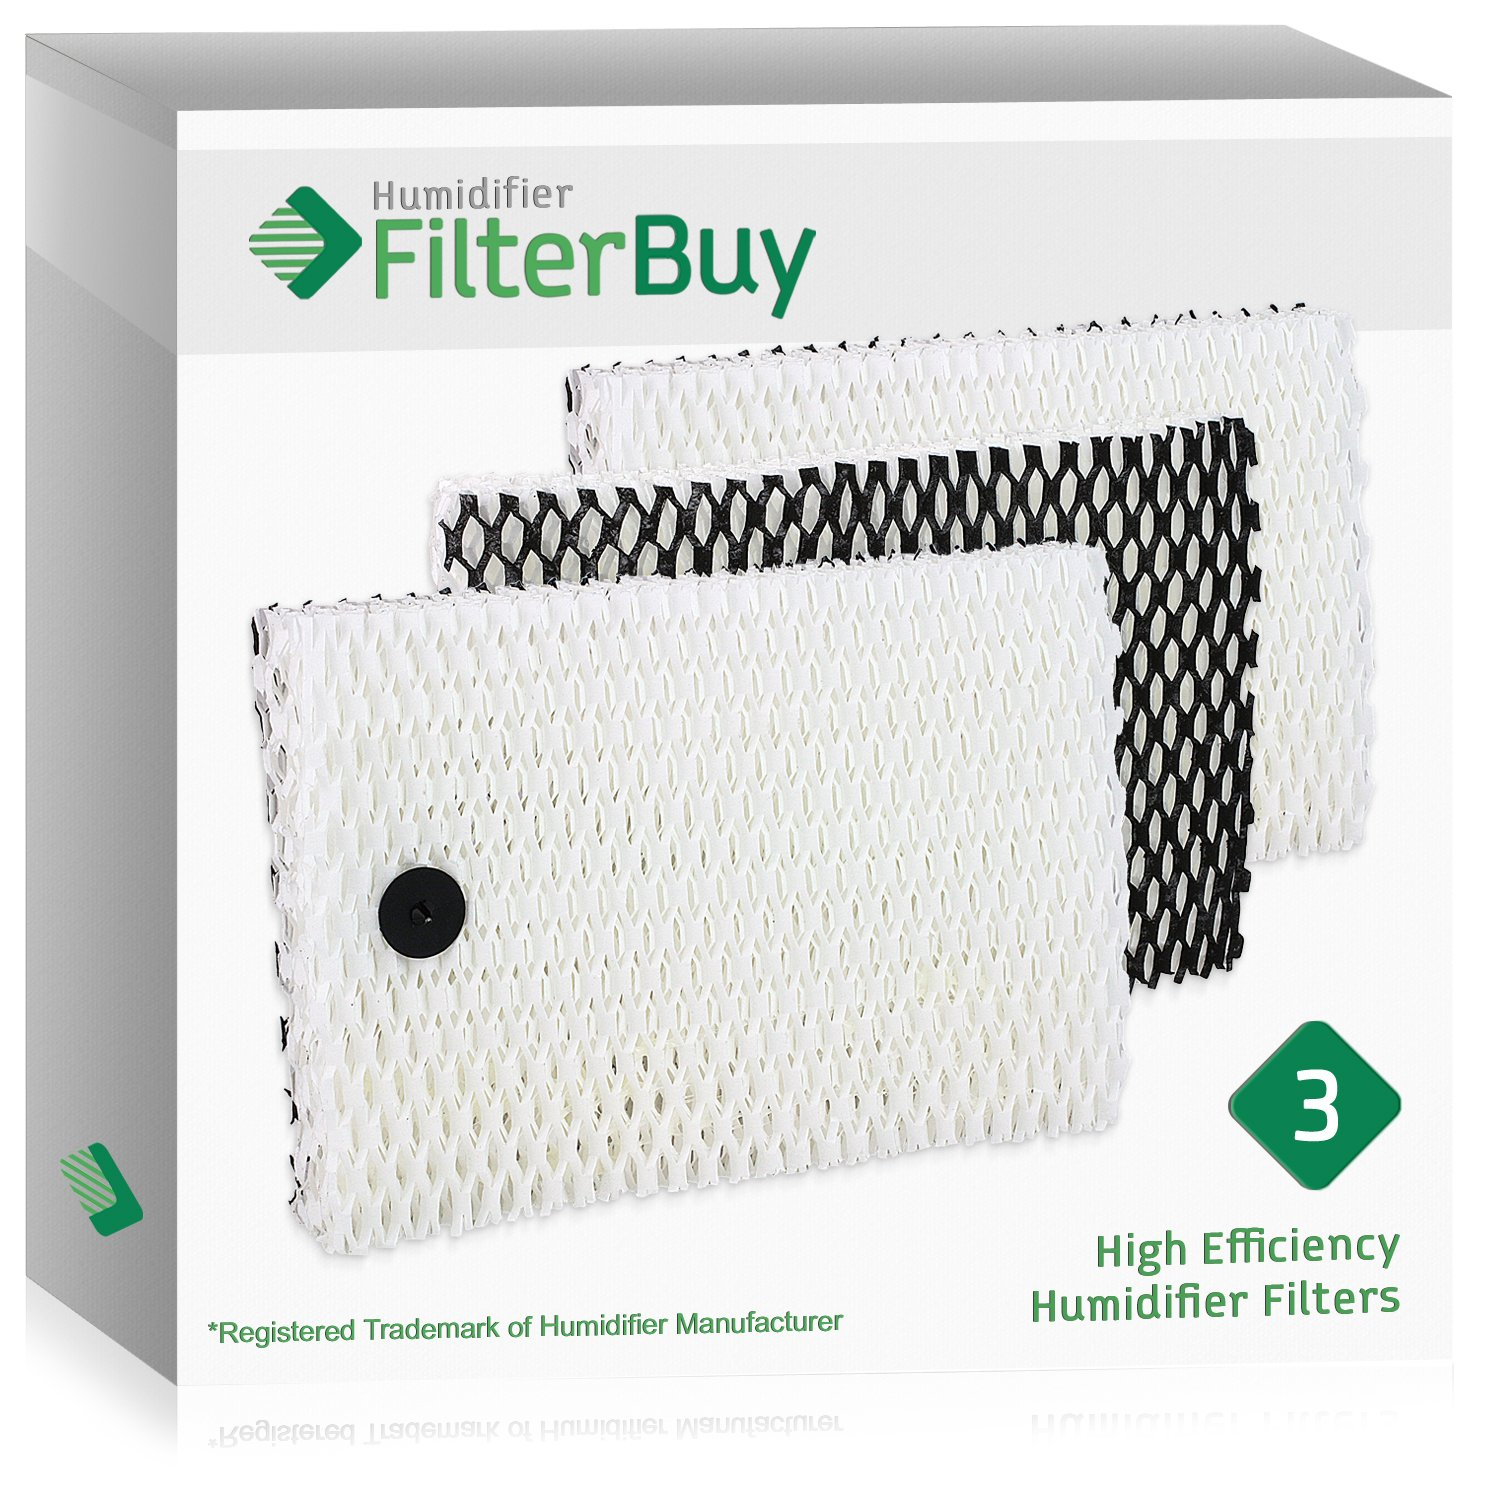 3 - Holmes Type ''E'' HWF100, Bionaire BWF100 Humidifier Replacement Filters. Designed by FilterBuy to fit HM630, HM729G, HM7203, HM7203RV, HM7204, HM7808, HM7305, HM730RC, HM7306RC, HM7405 & HM7405RC.